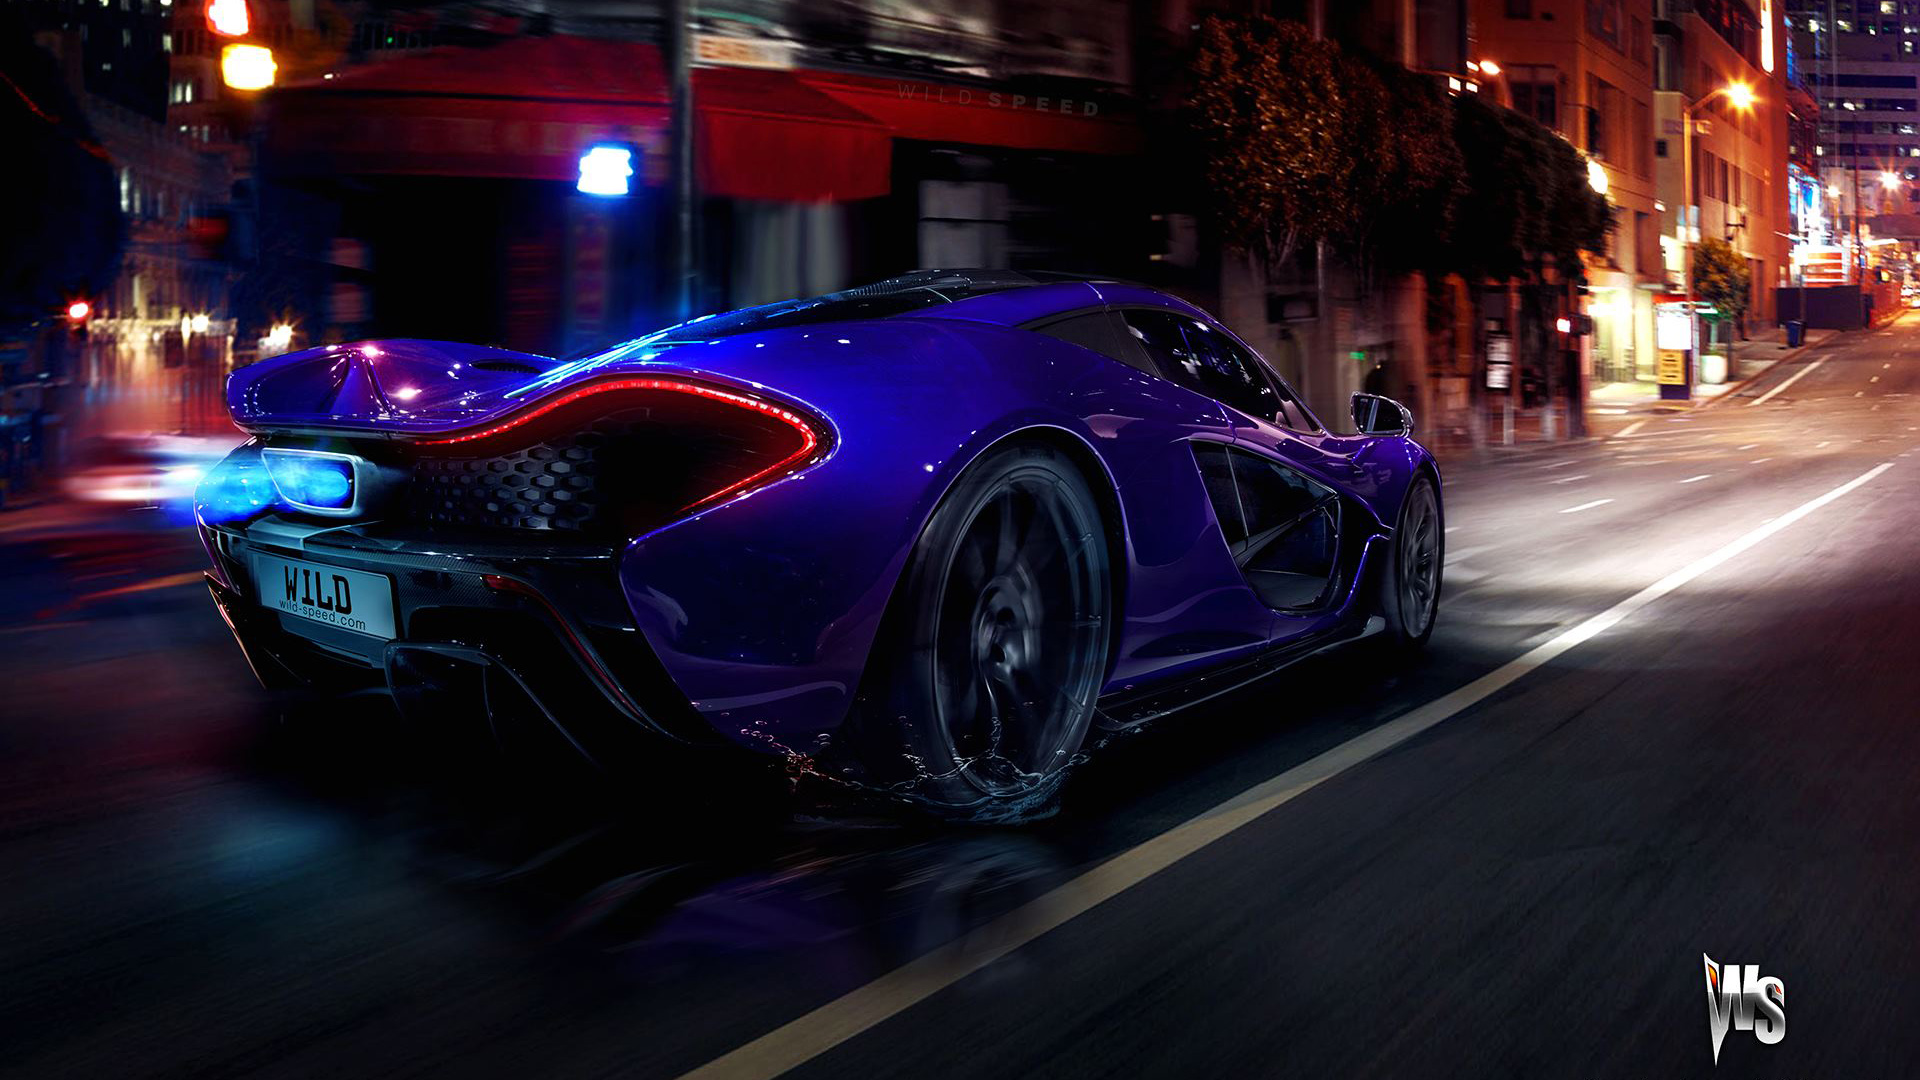 McLaren P1 in Blue 294.14 Kb